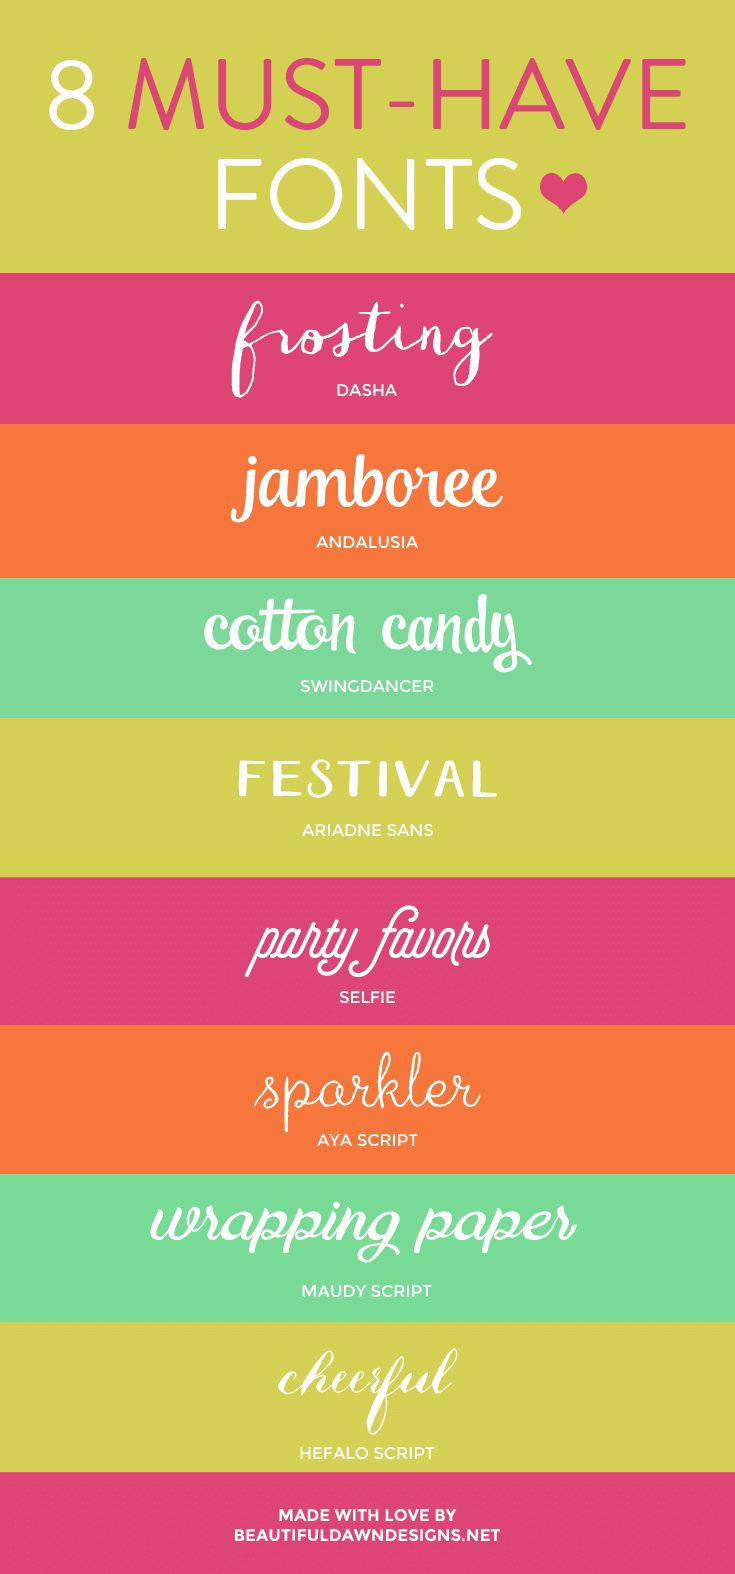 A collection of 8 must-have fonts.